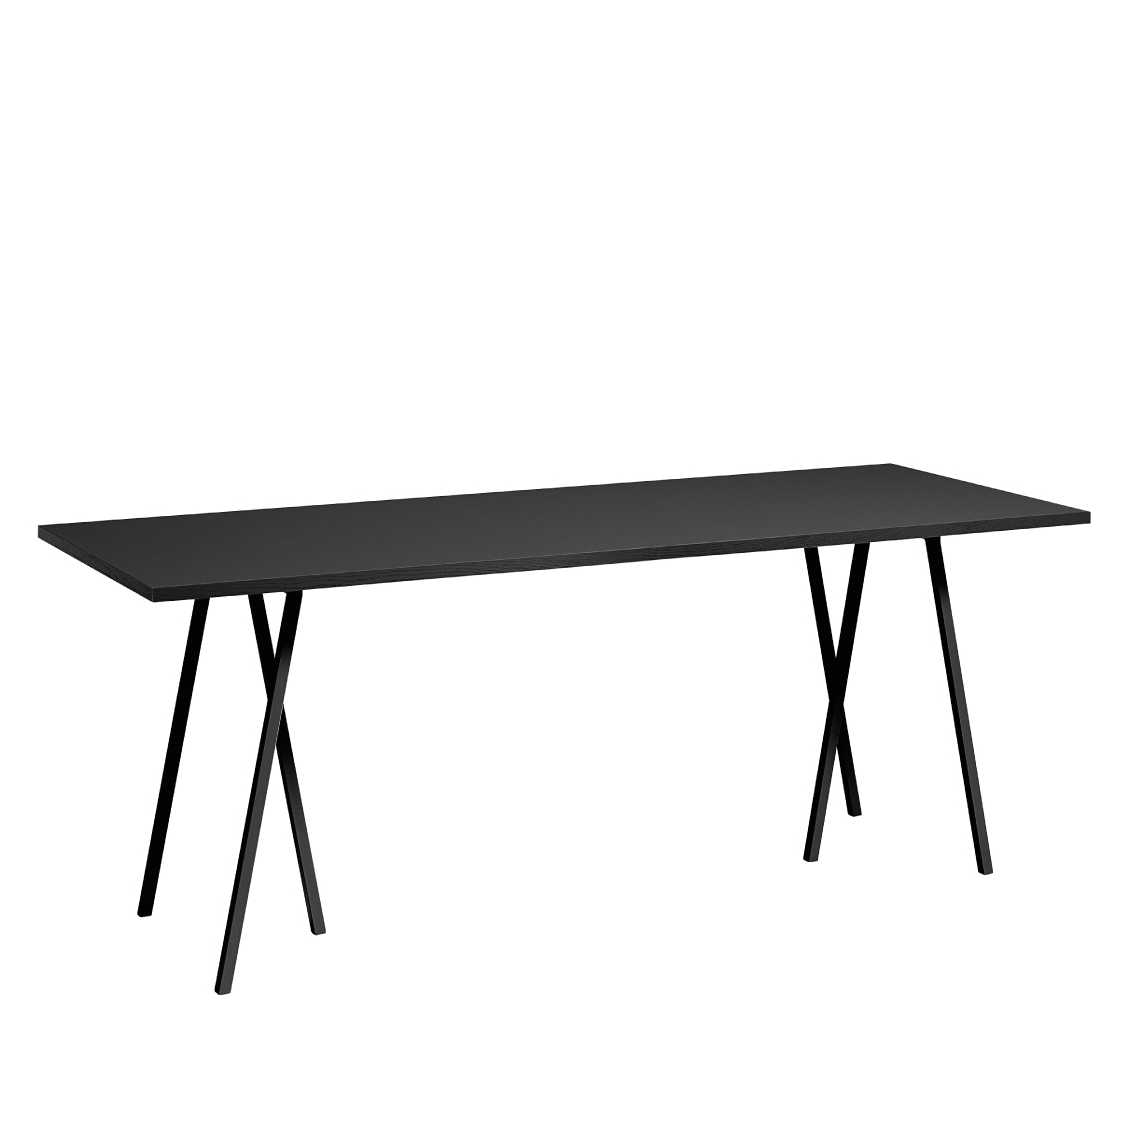 hay loop stand table 160cm x 77cm black white grey. Black Bedroom Furniture Sets. Home Design Ideas